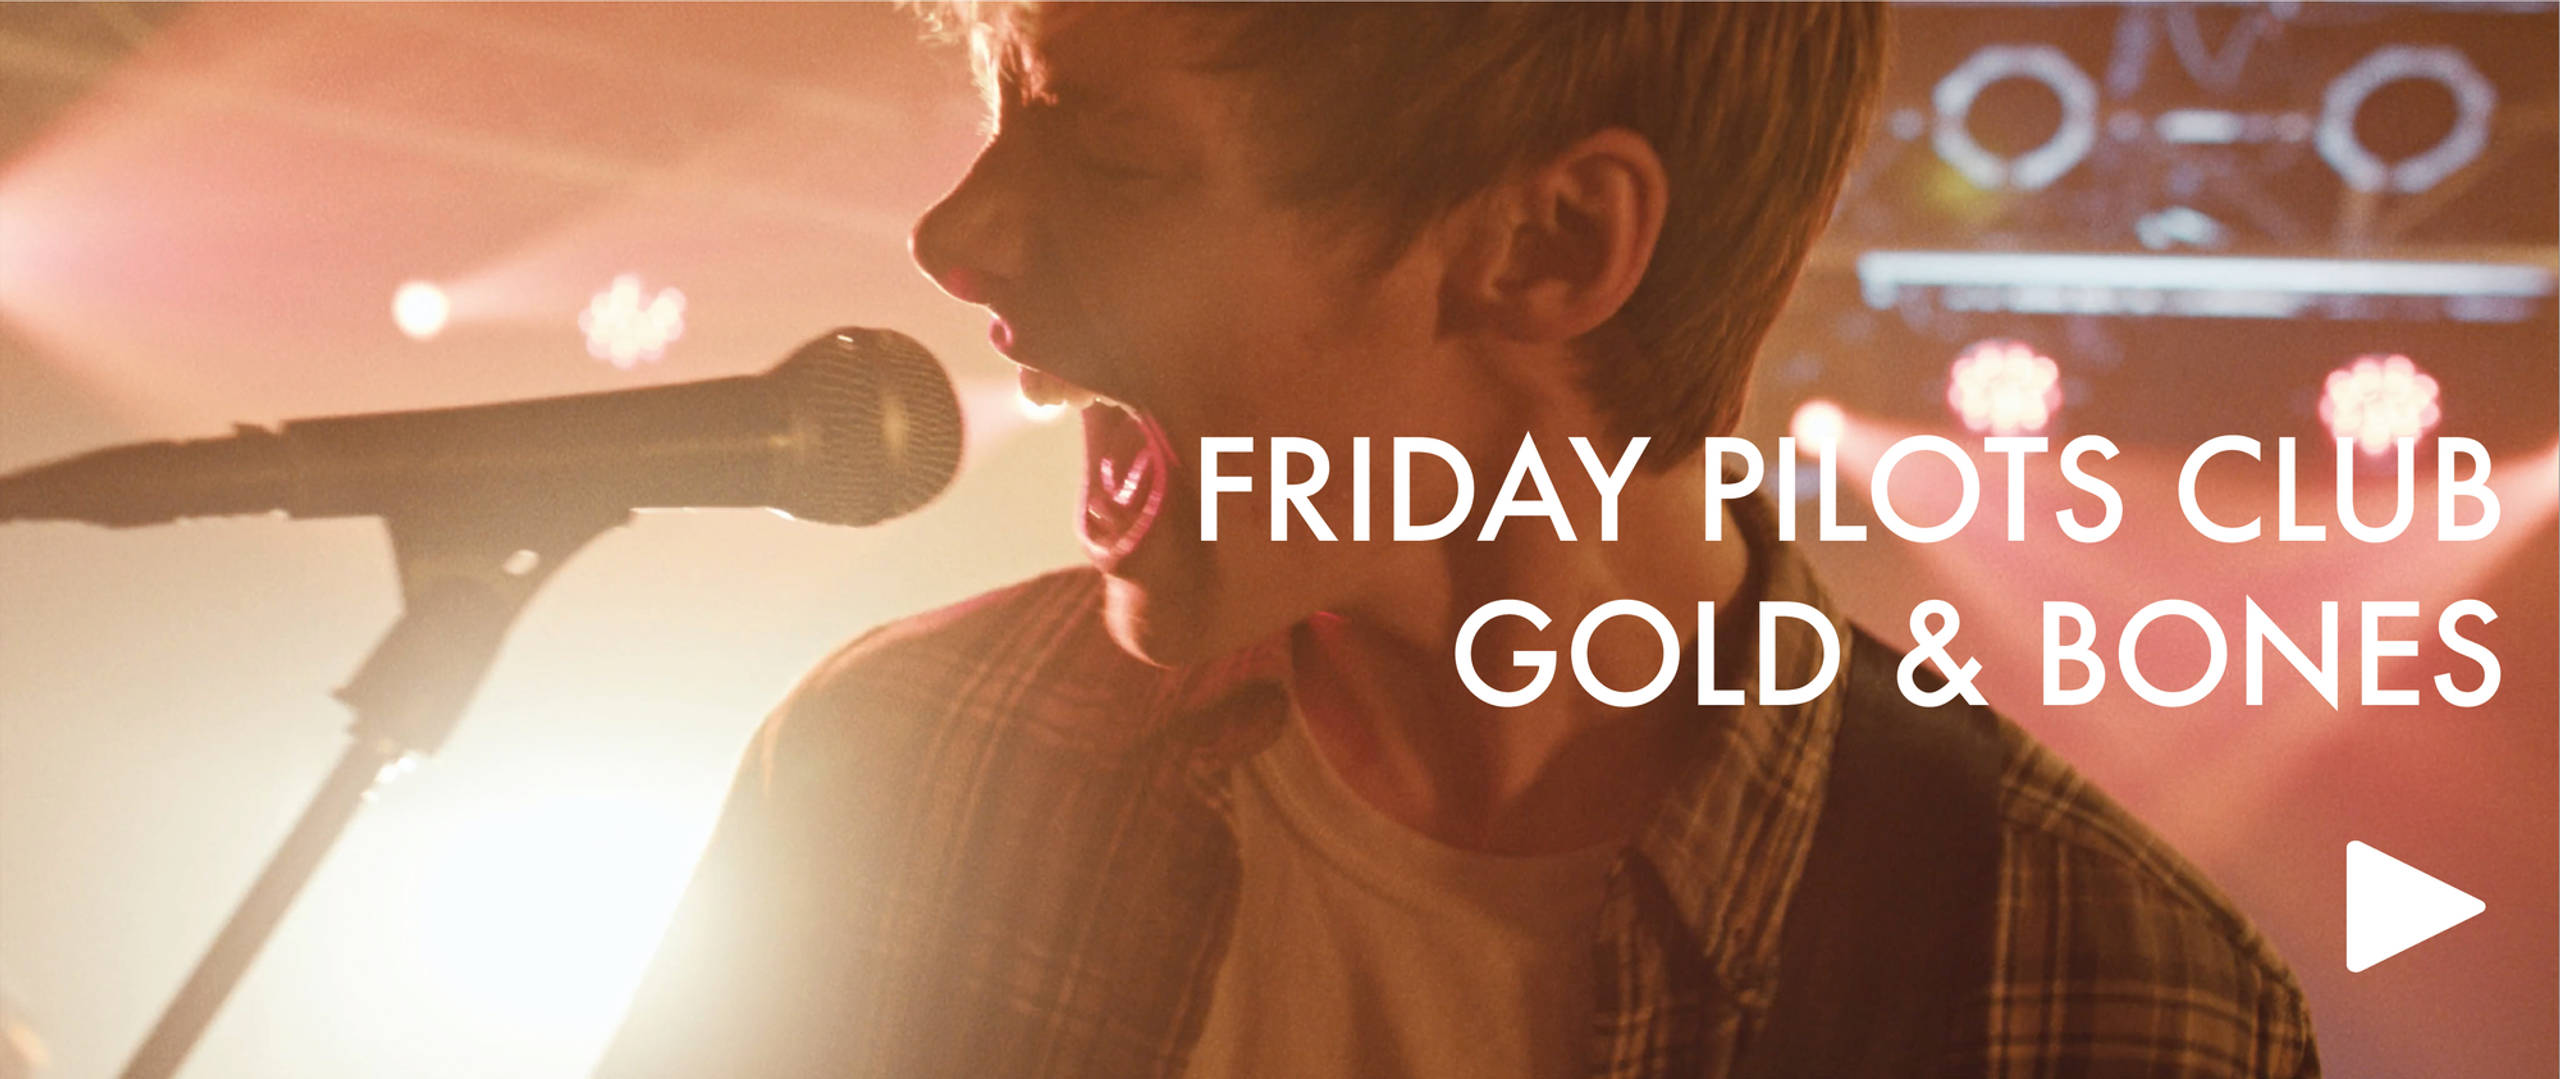 Gold and Bones - Friday Pilots Club (OFF